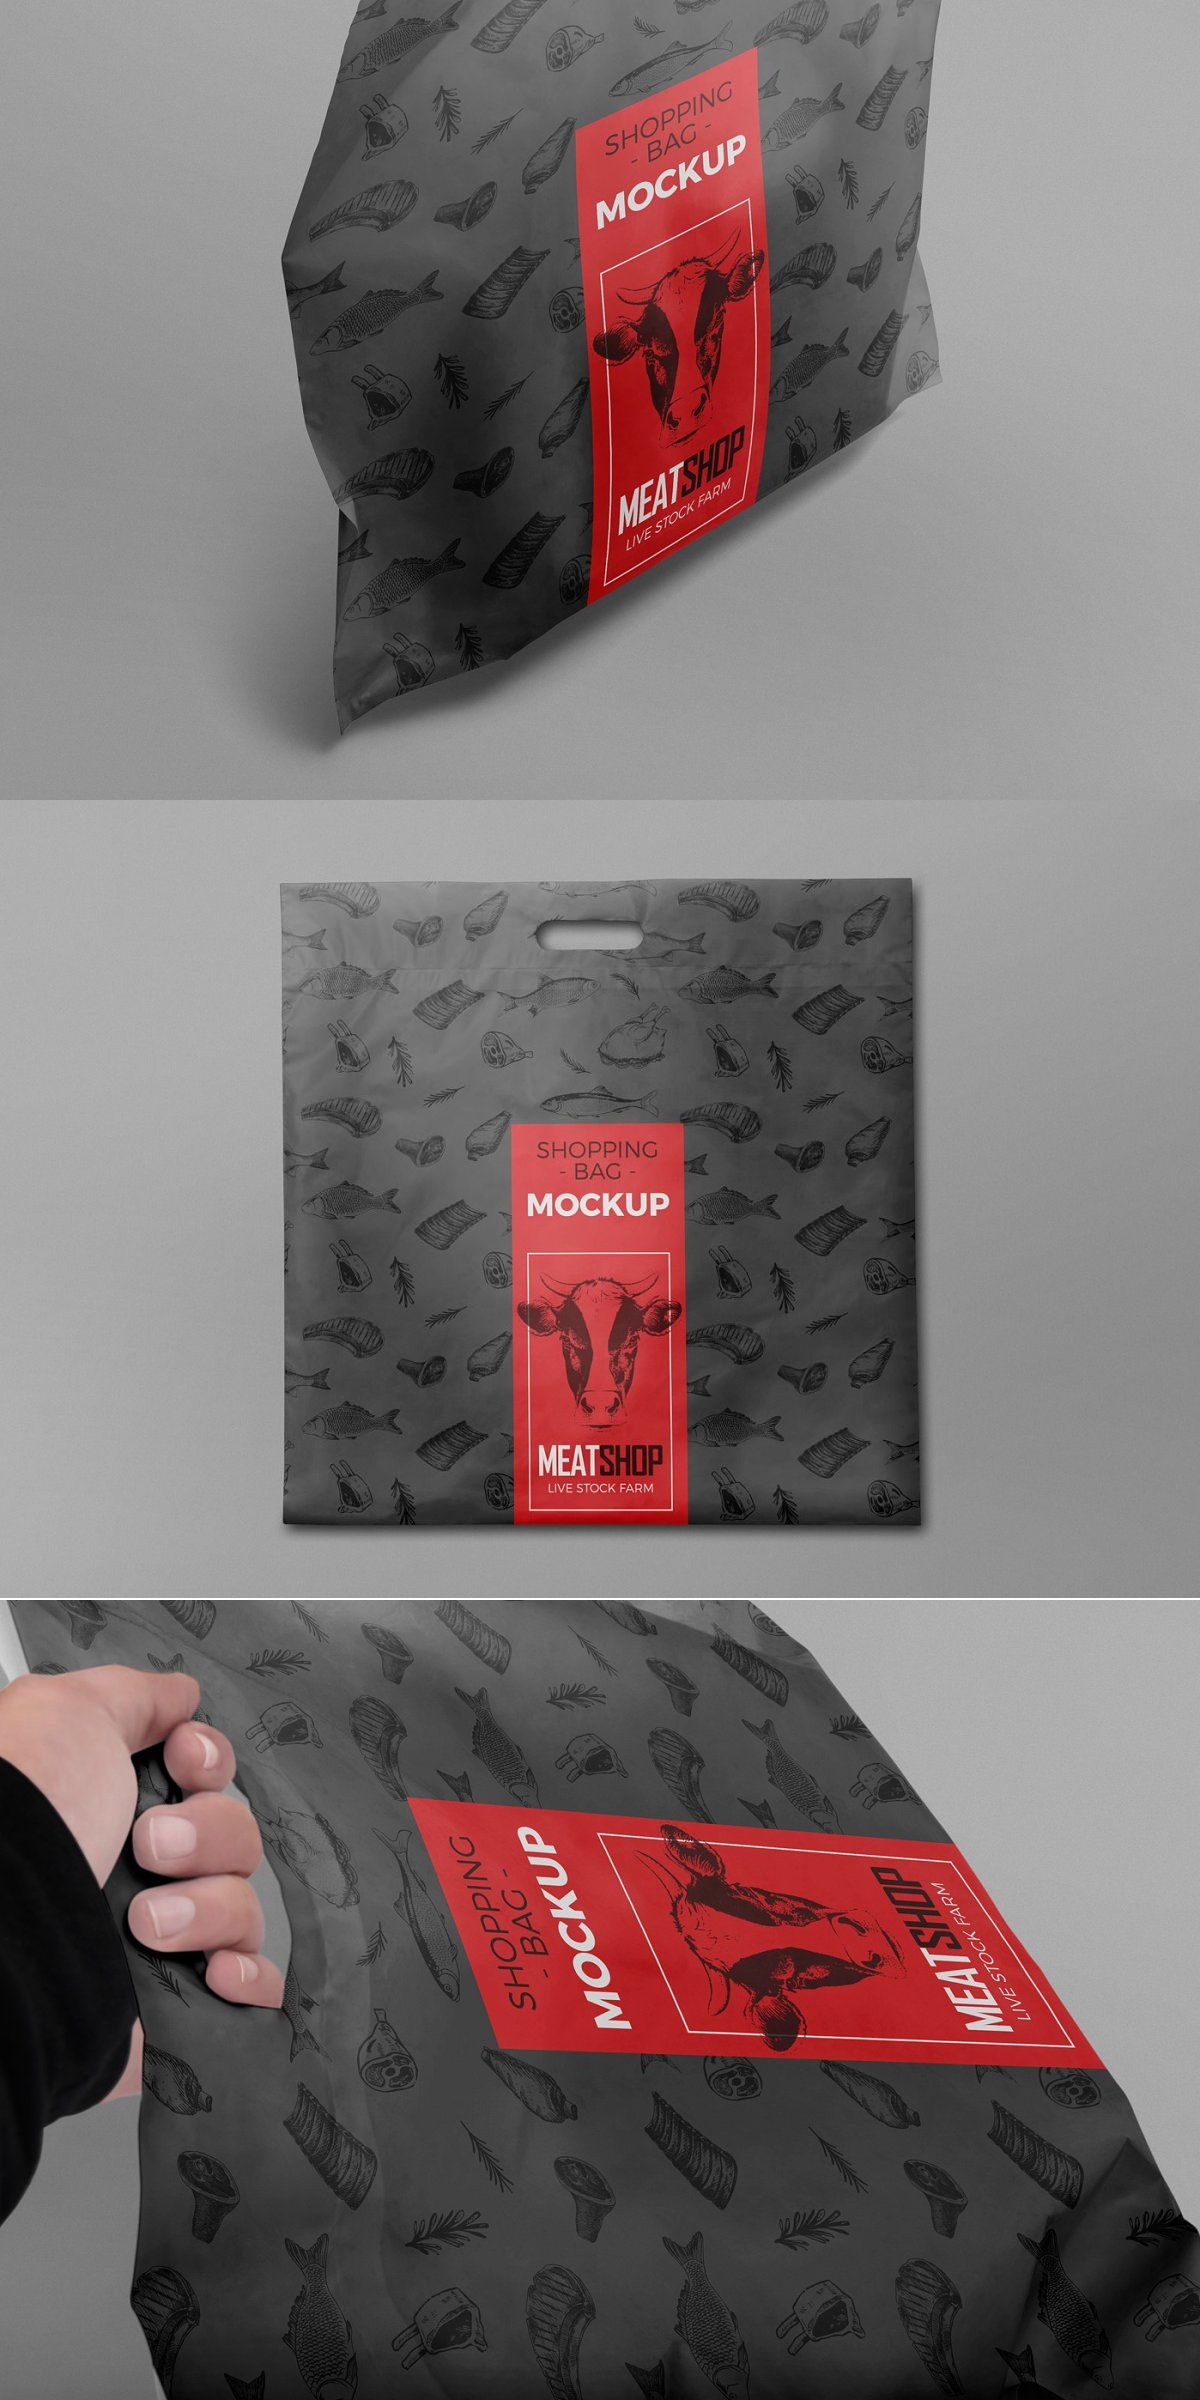 Download Plastic Bag Mockups Bag Mockup Plastic Bag Design Packaging Design